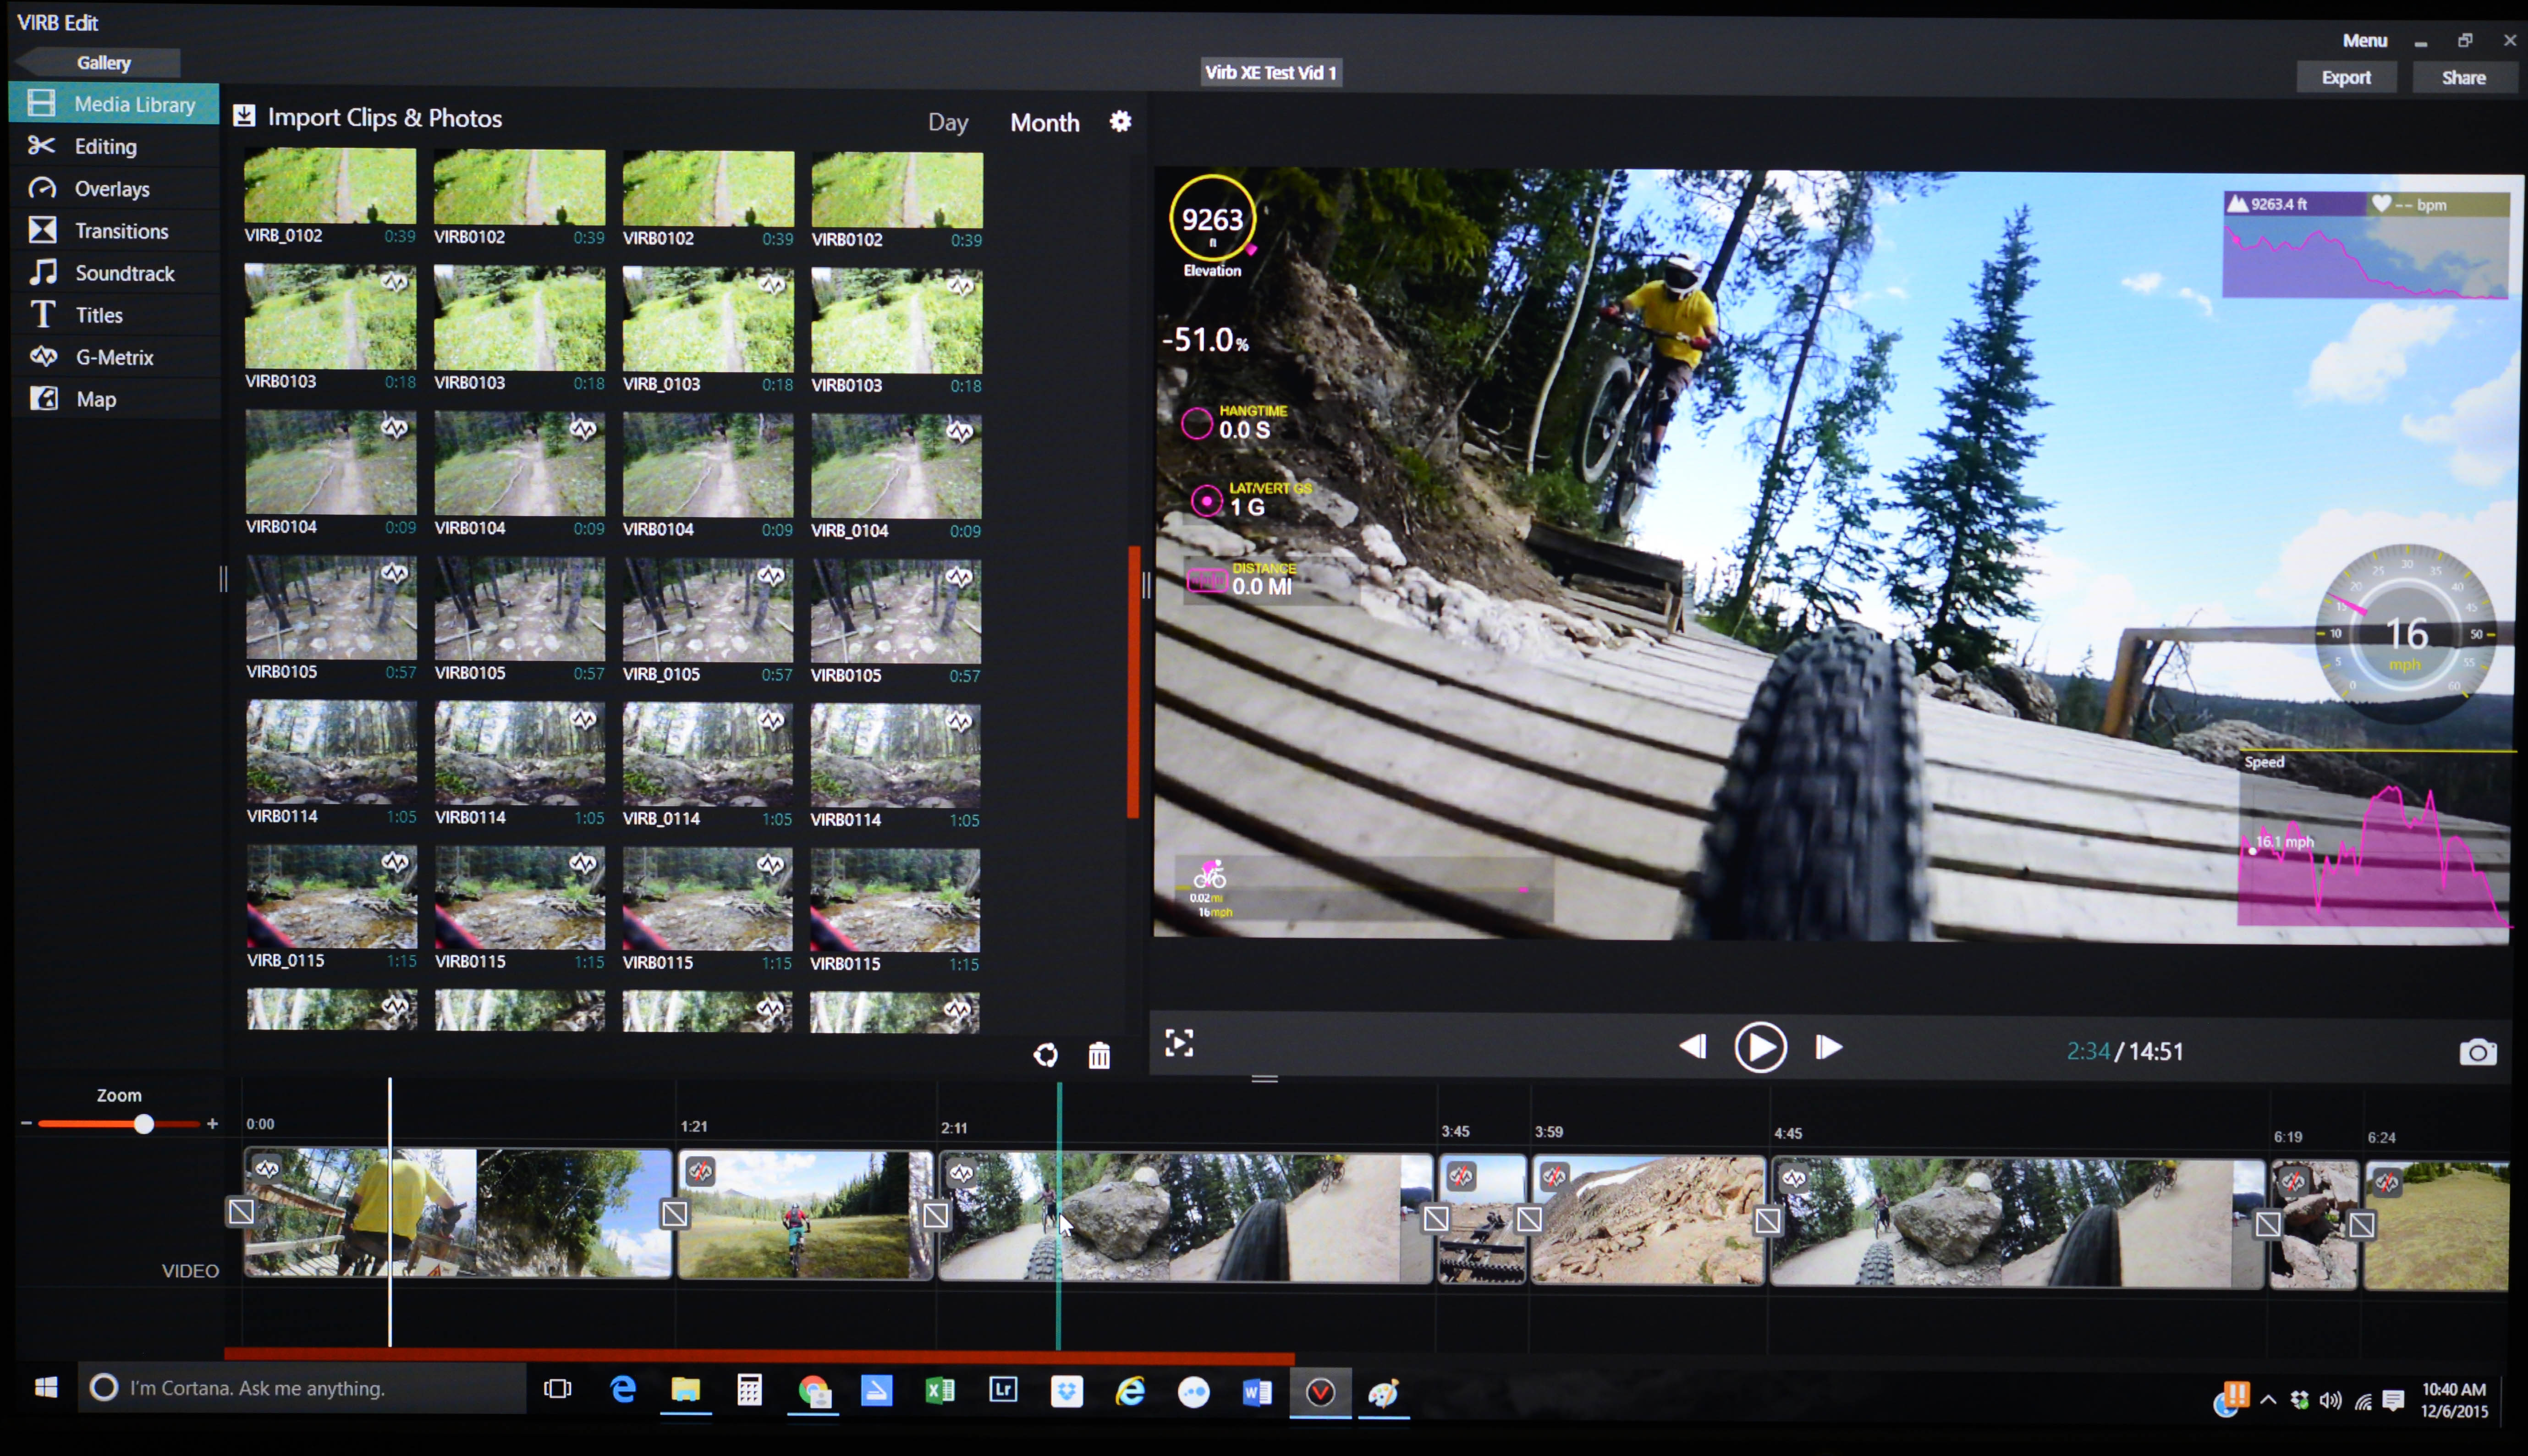 Virb Editing software is basic but with a lot of fun features. You can crank out a pretty descent video in minutes.